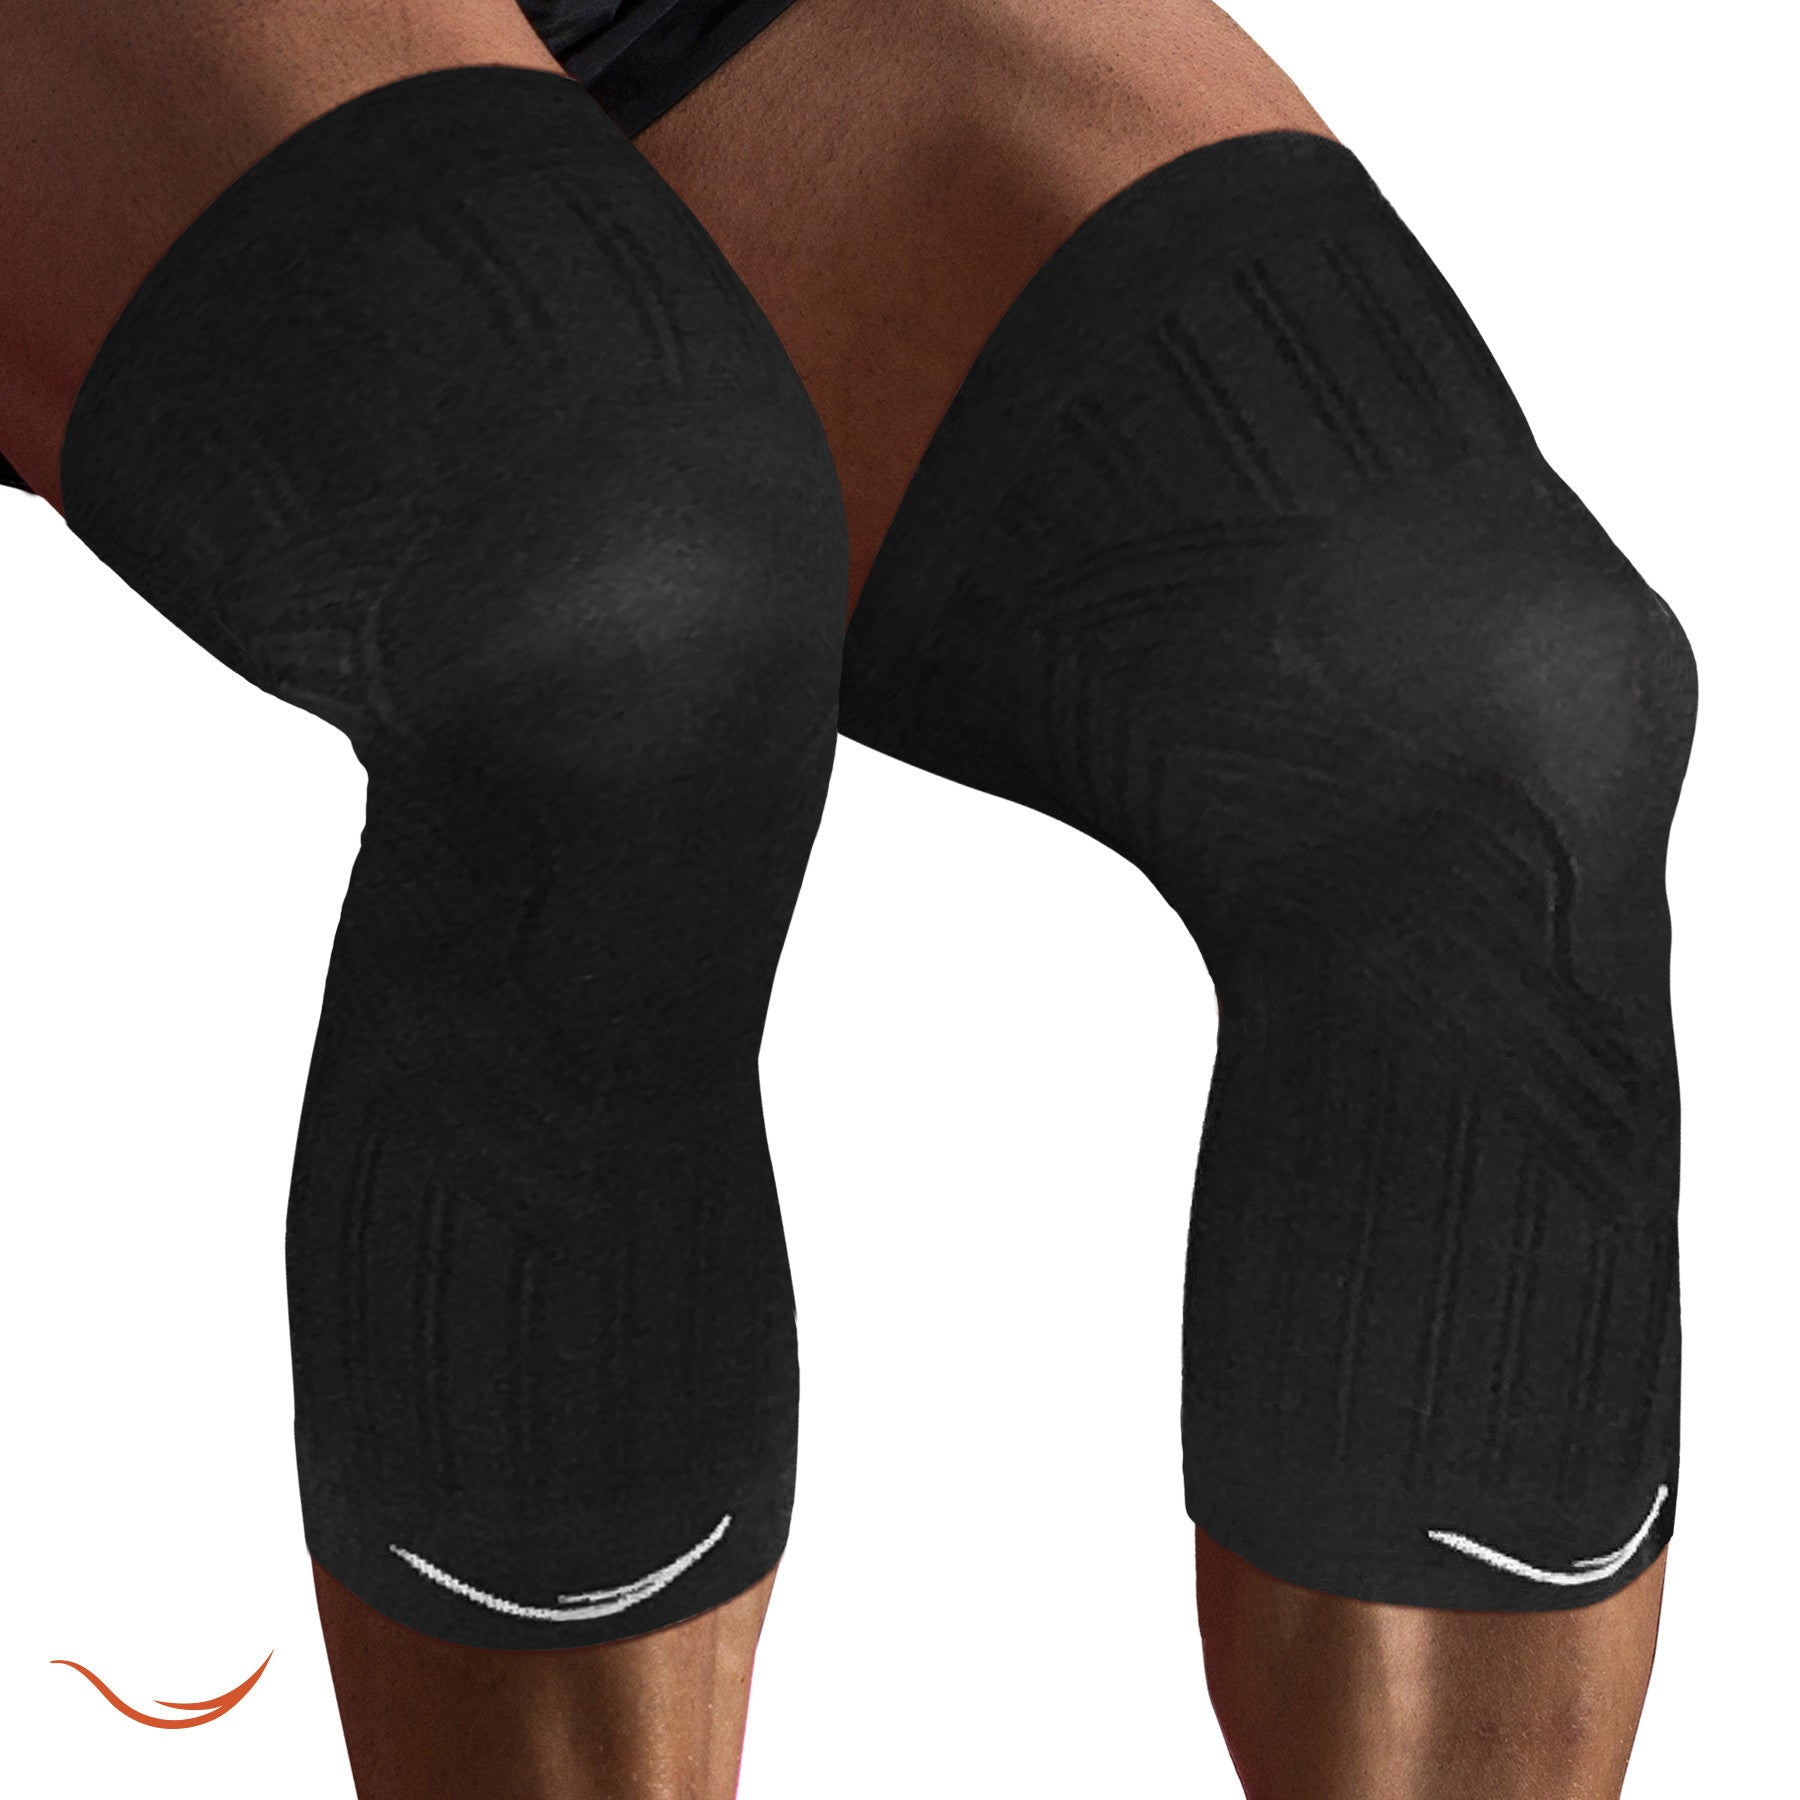 20 - 30 mmhg Graduated Compression Knee Sleeves (1 Pair)